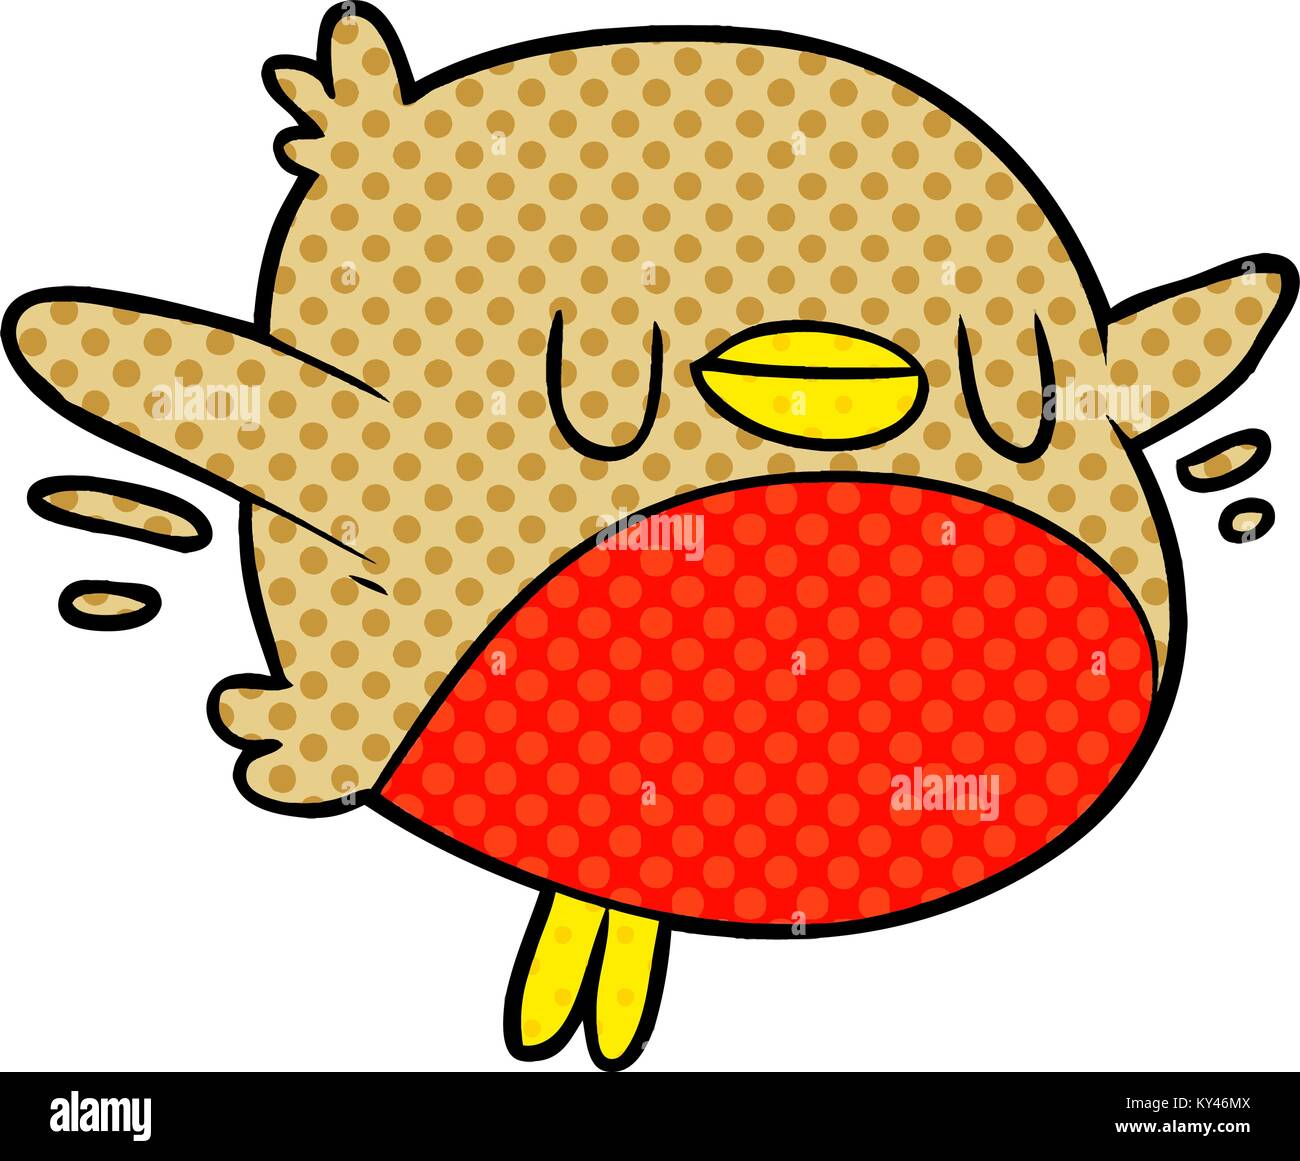 funny cartoon christmas robin high resolution stock photography and images alamy https www alamy com stock photo cute cartoon christmas robin 171582122 html